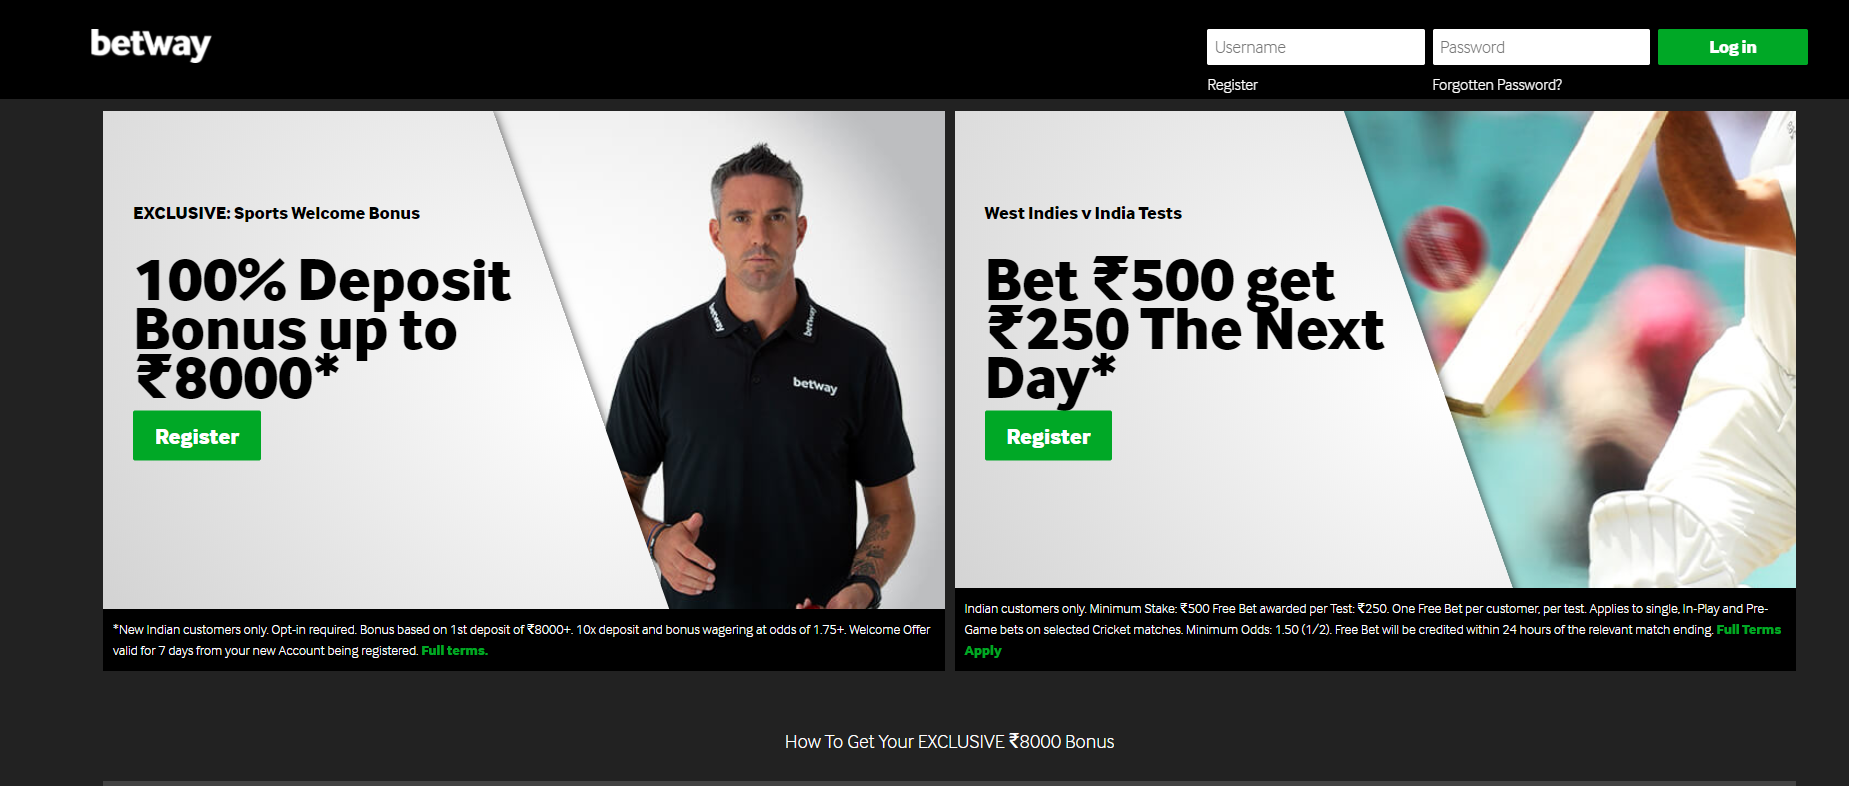 Get a 100% deposit bonus on Betway